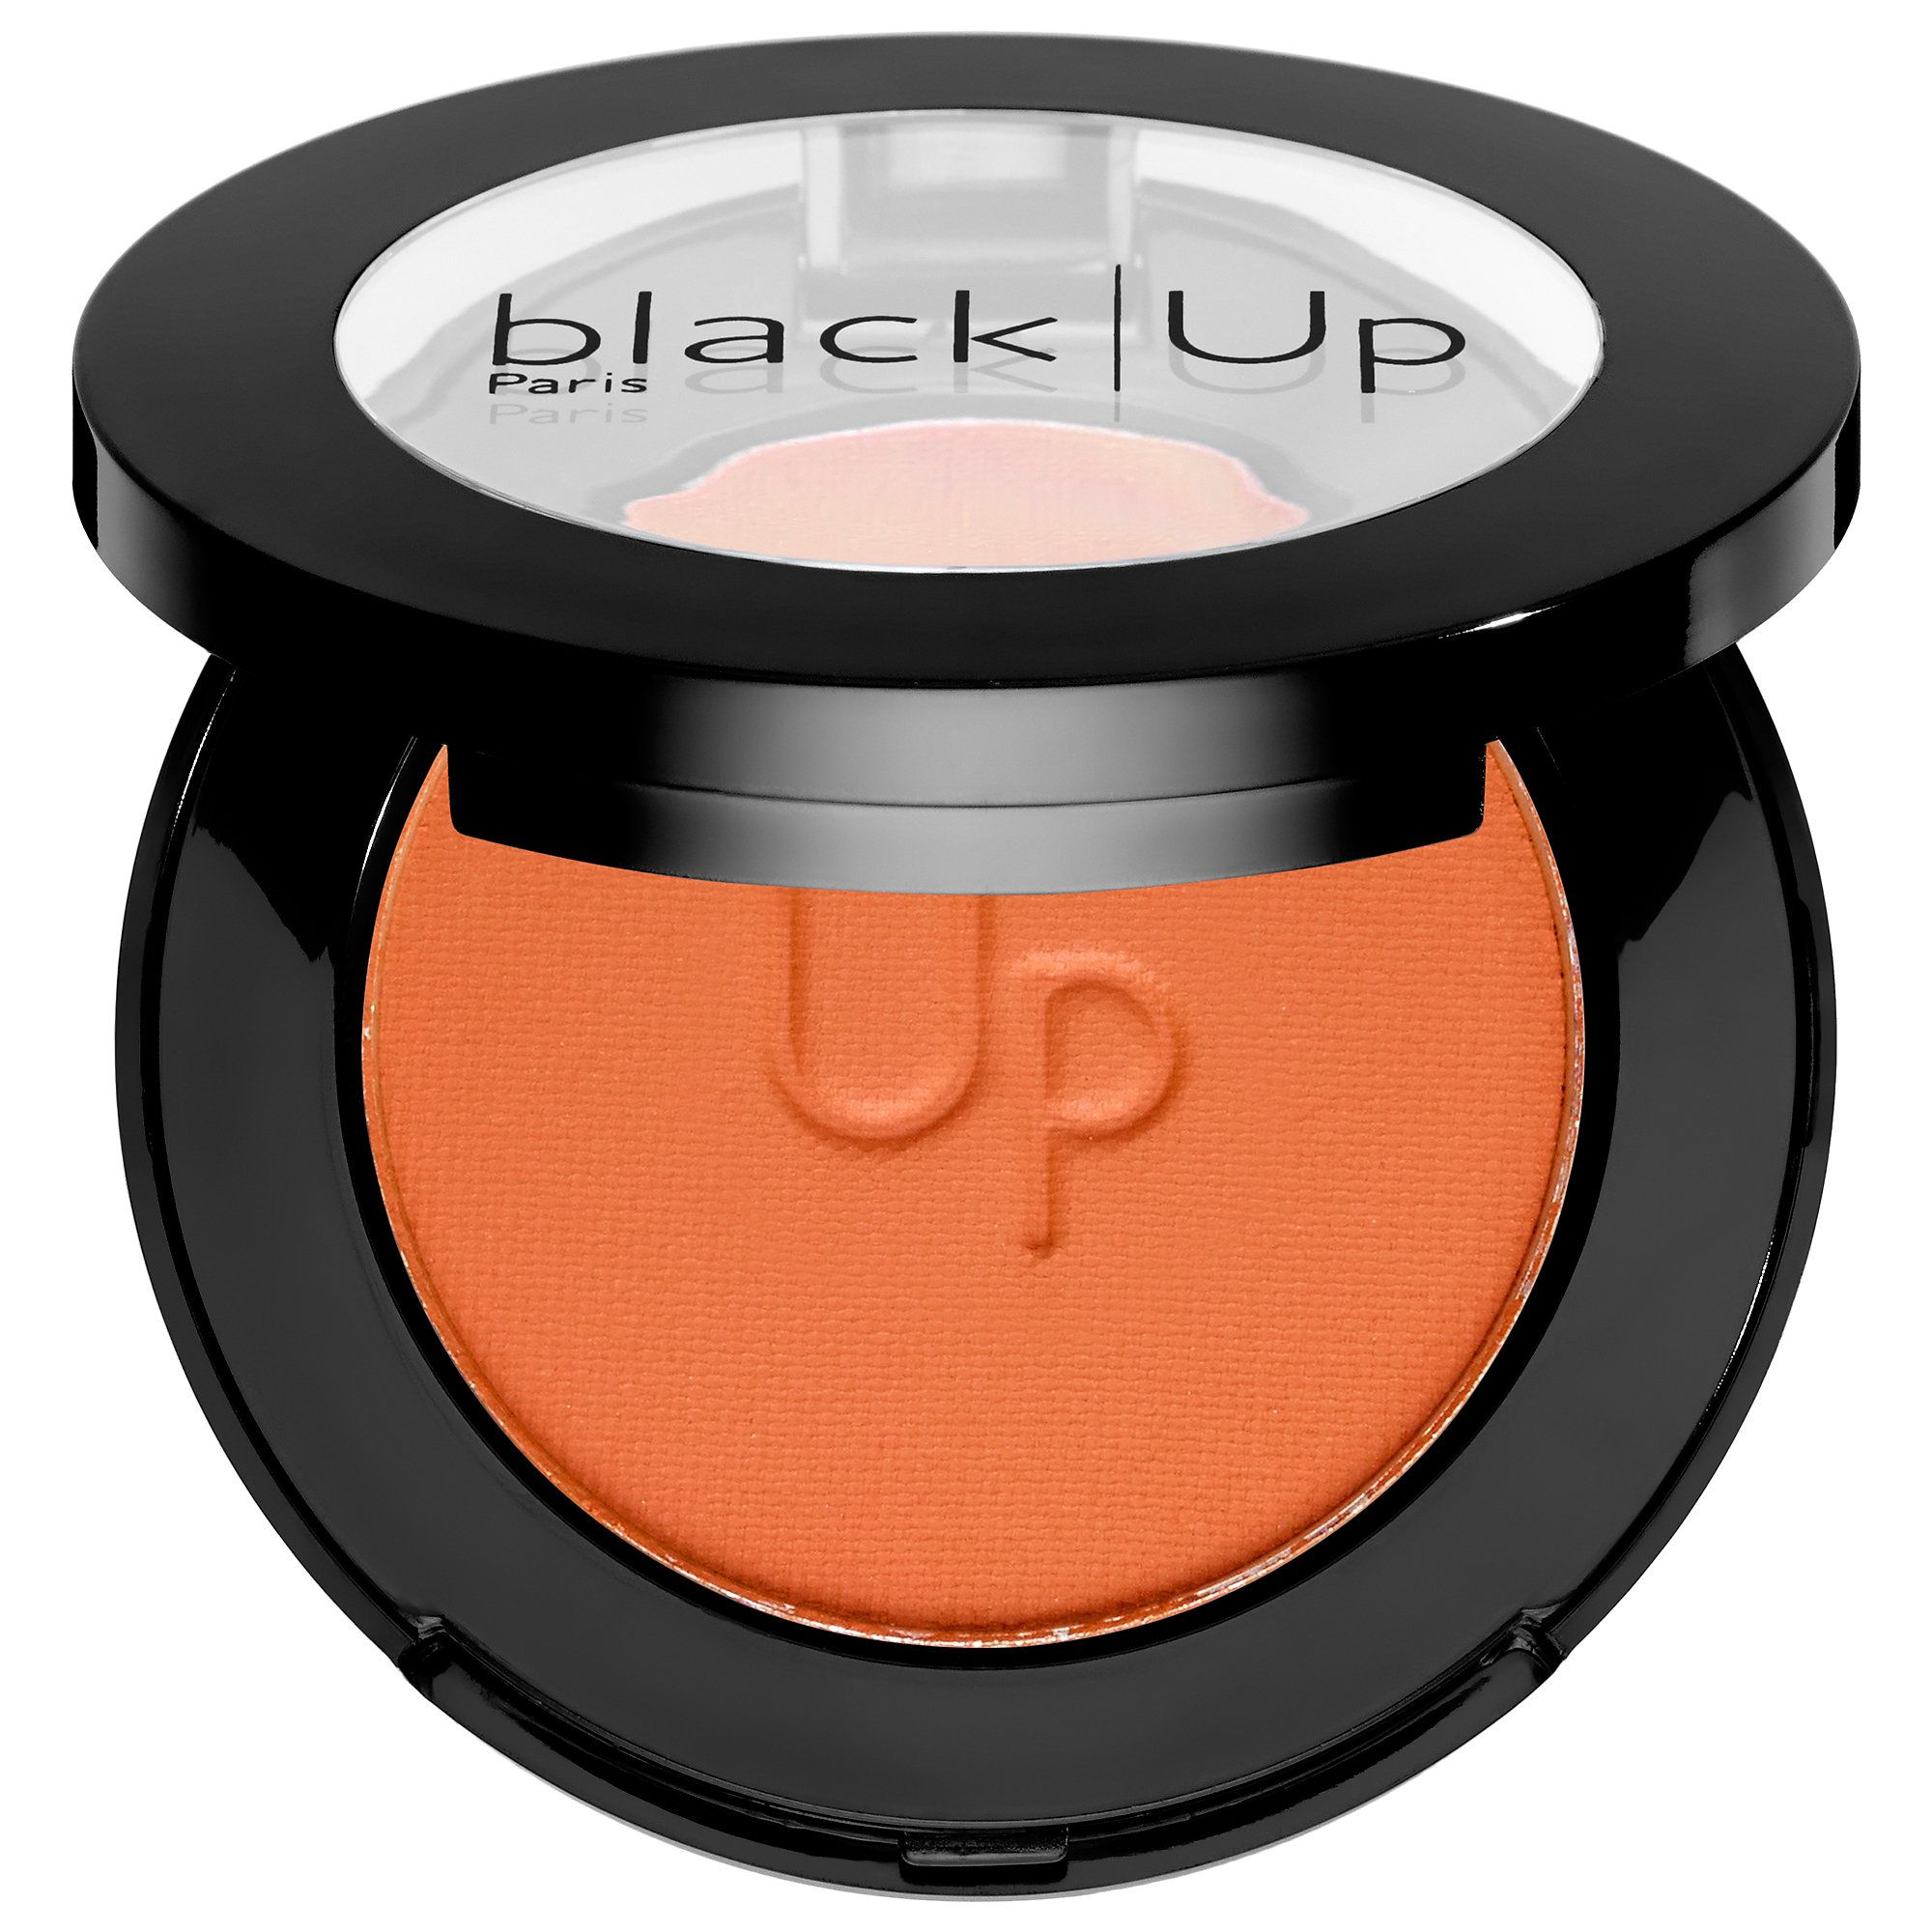 Shop black Up's Eyeshadow at Sephora. These highly-pigmented shadows feature vibrant matte and metallic finishes.